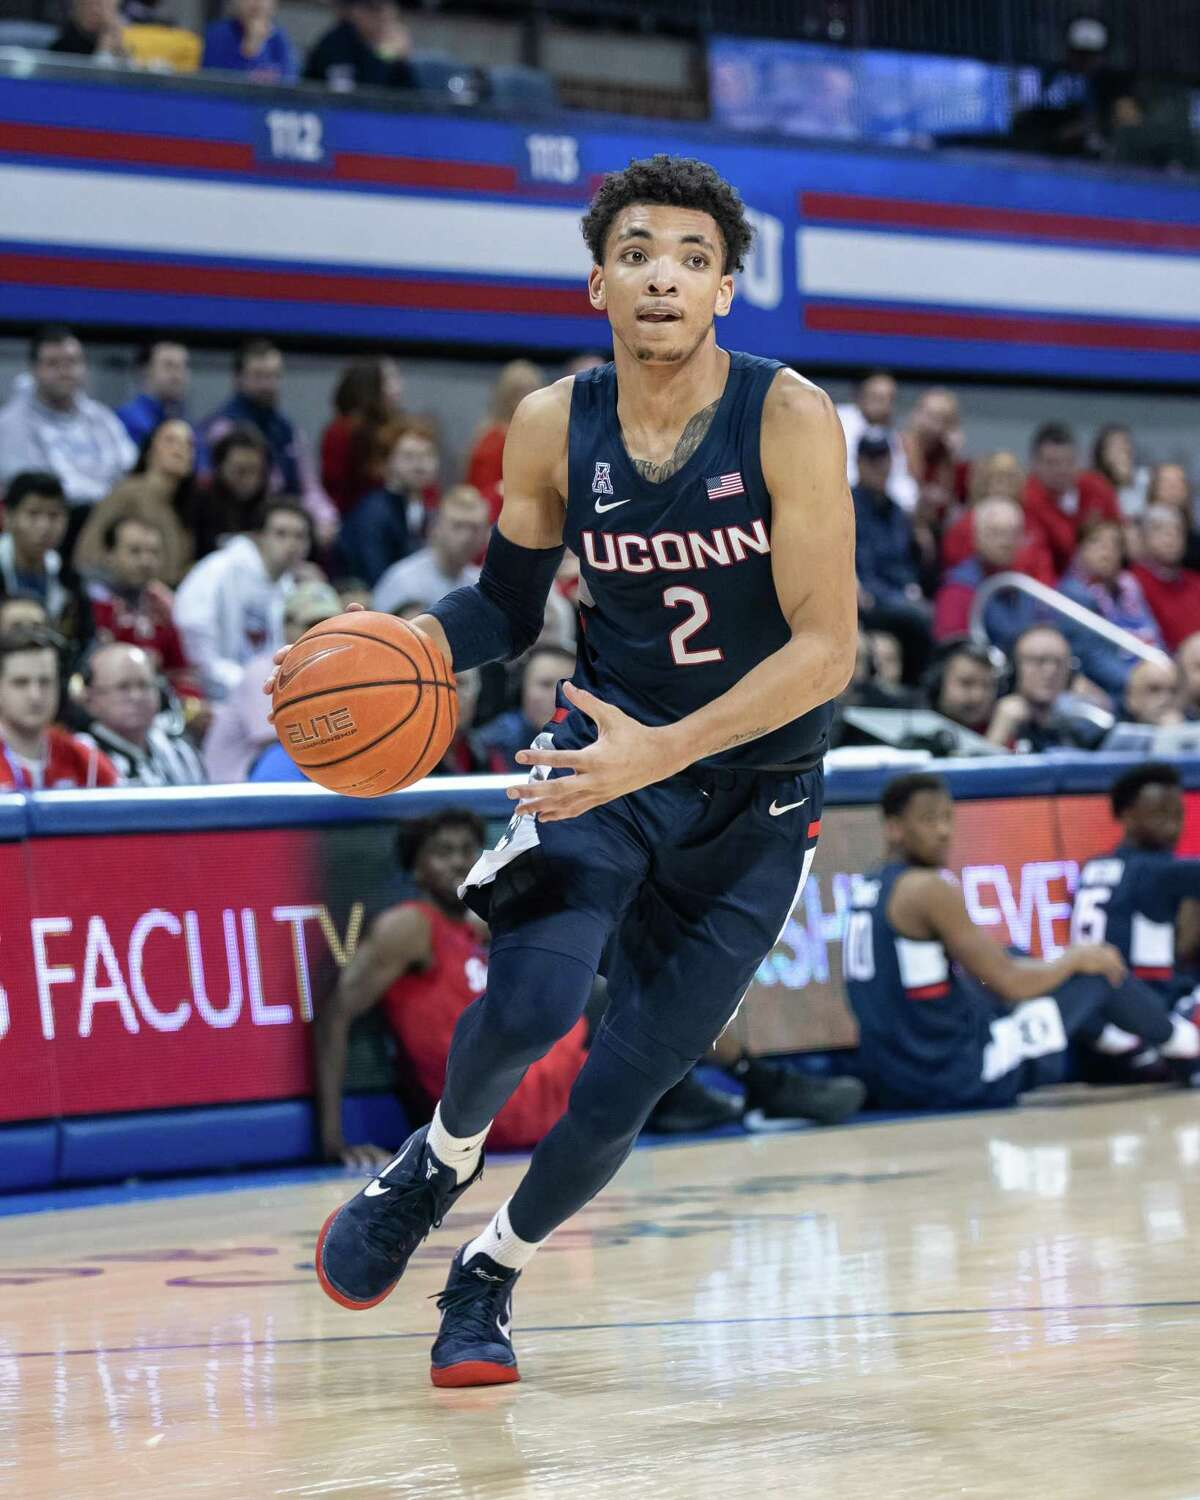 UConn's James Bouknight averaged 13 points and 4 assists last season.